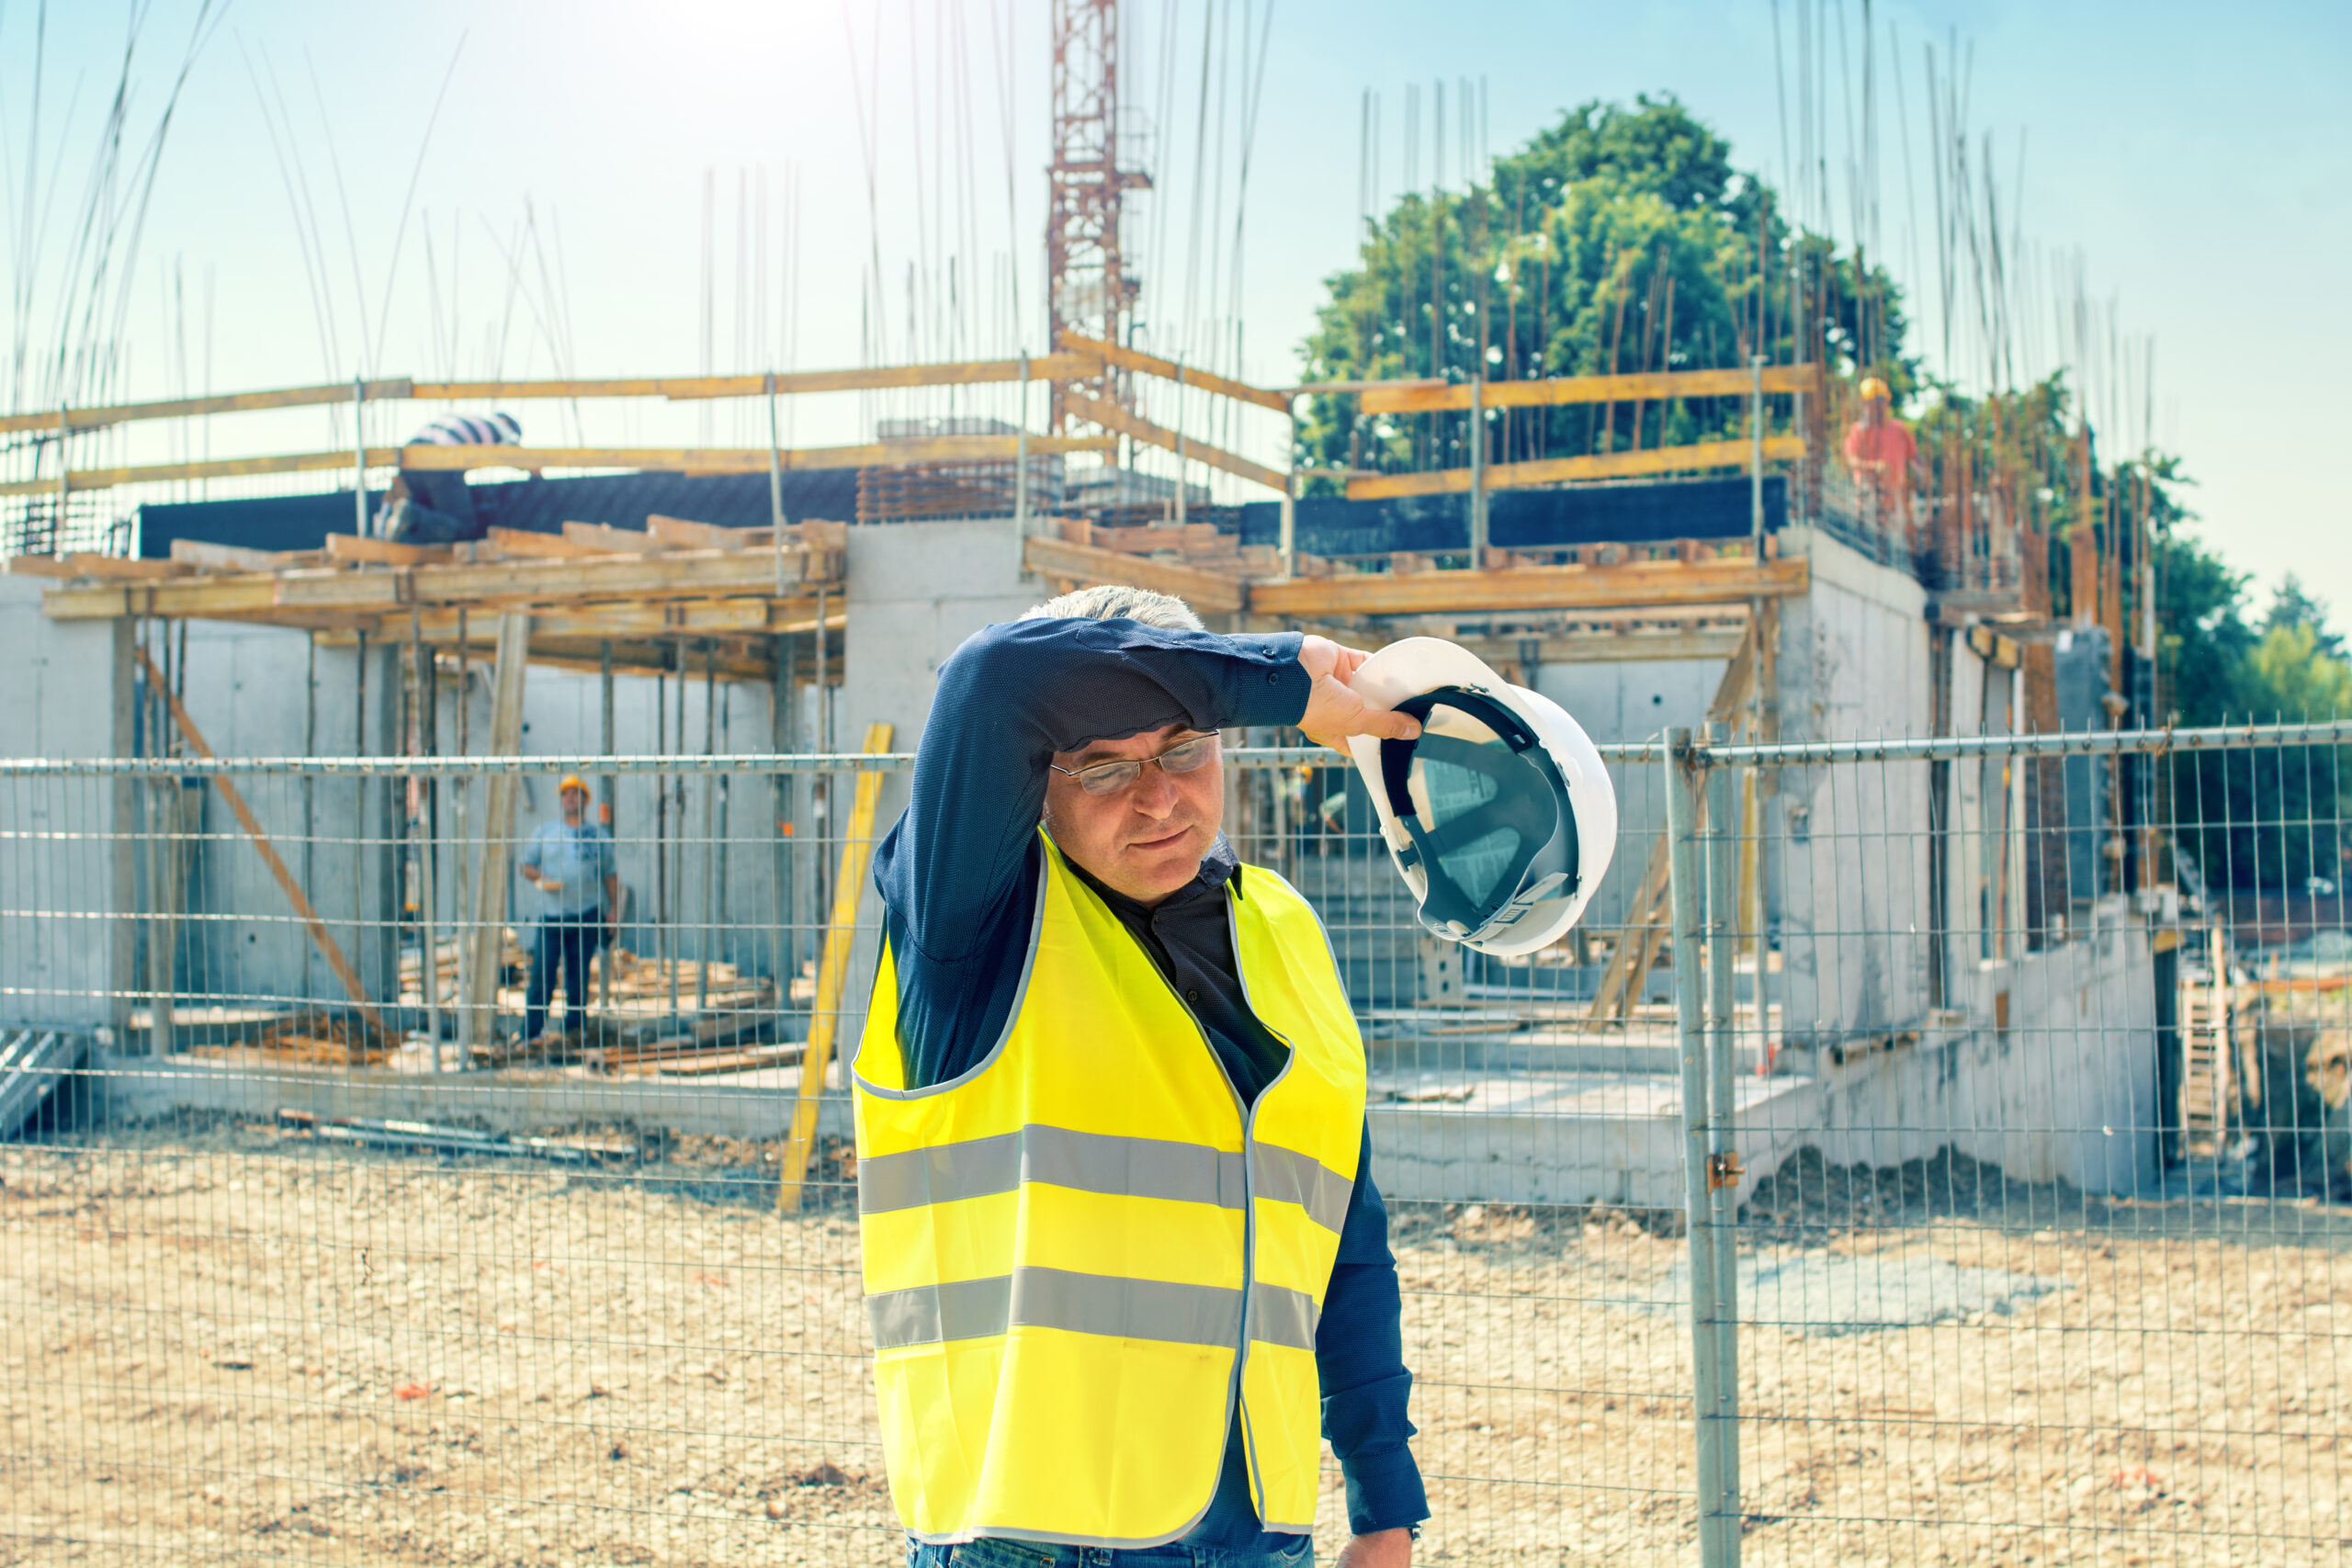 Construction Worker Suffering From Heat Stress